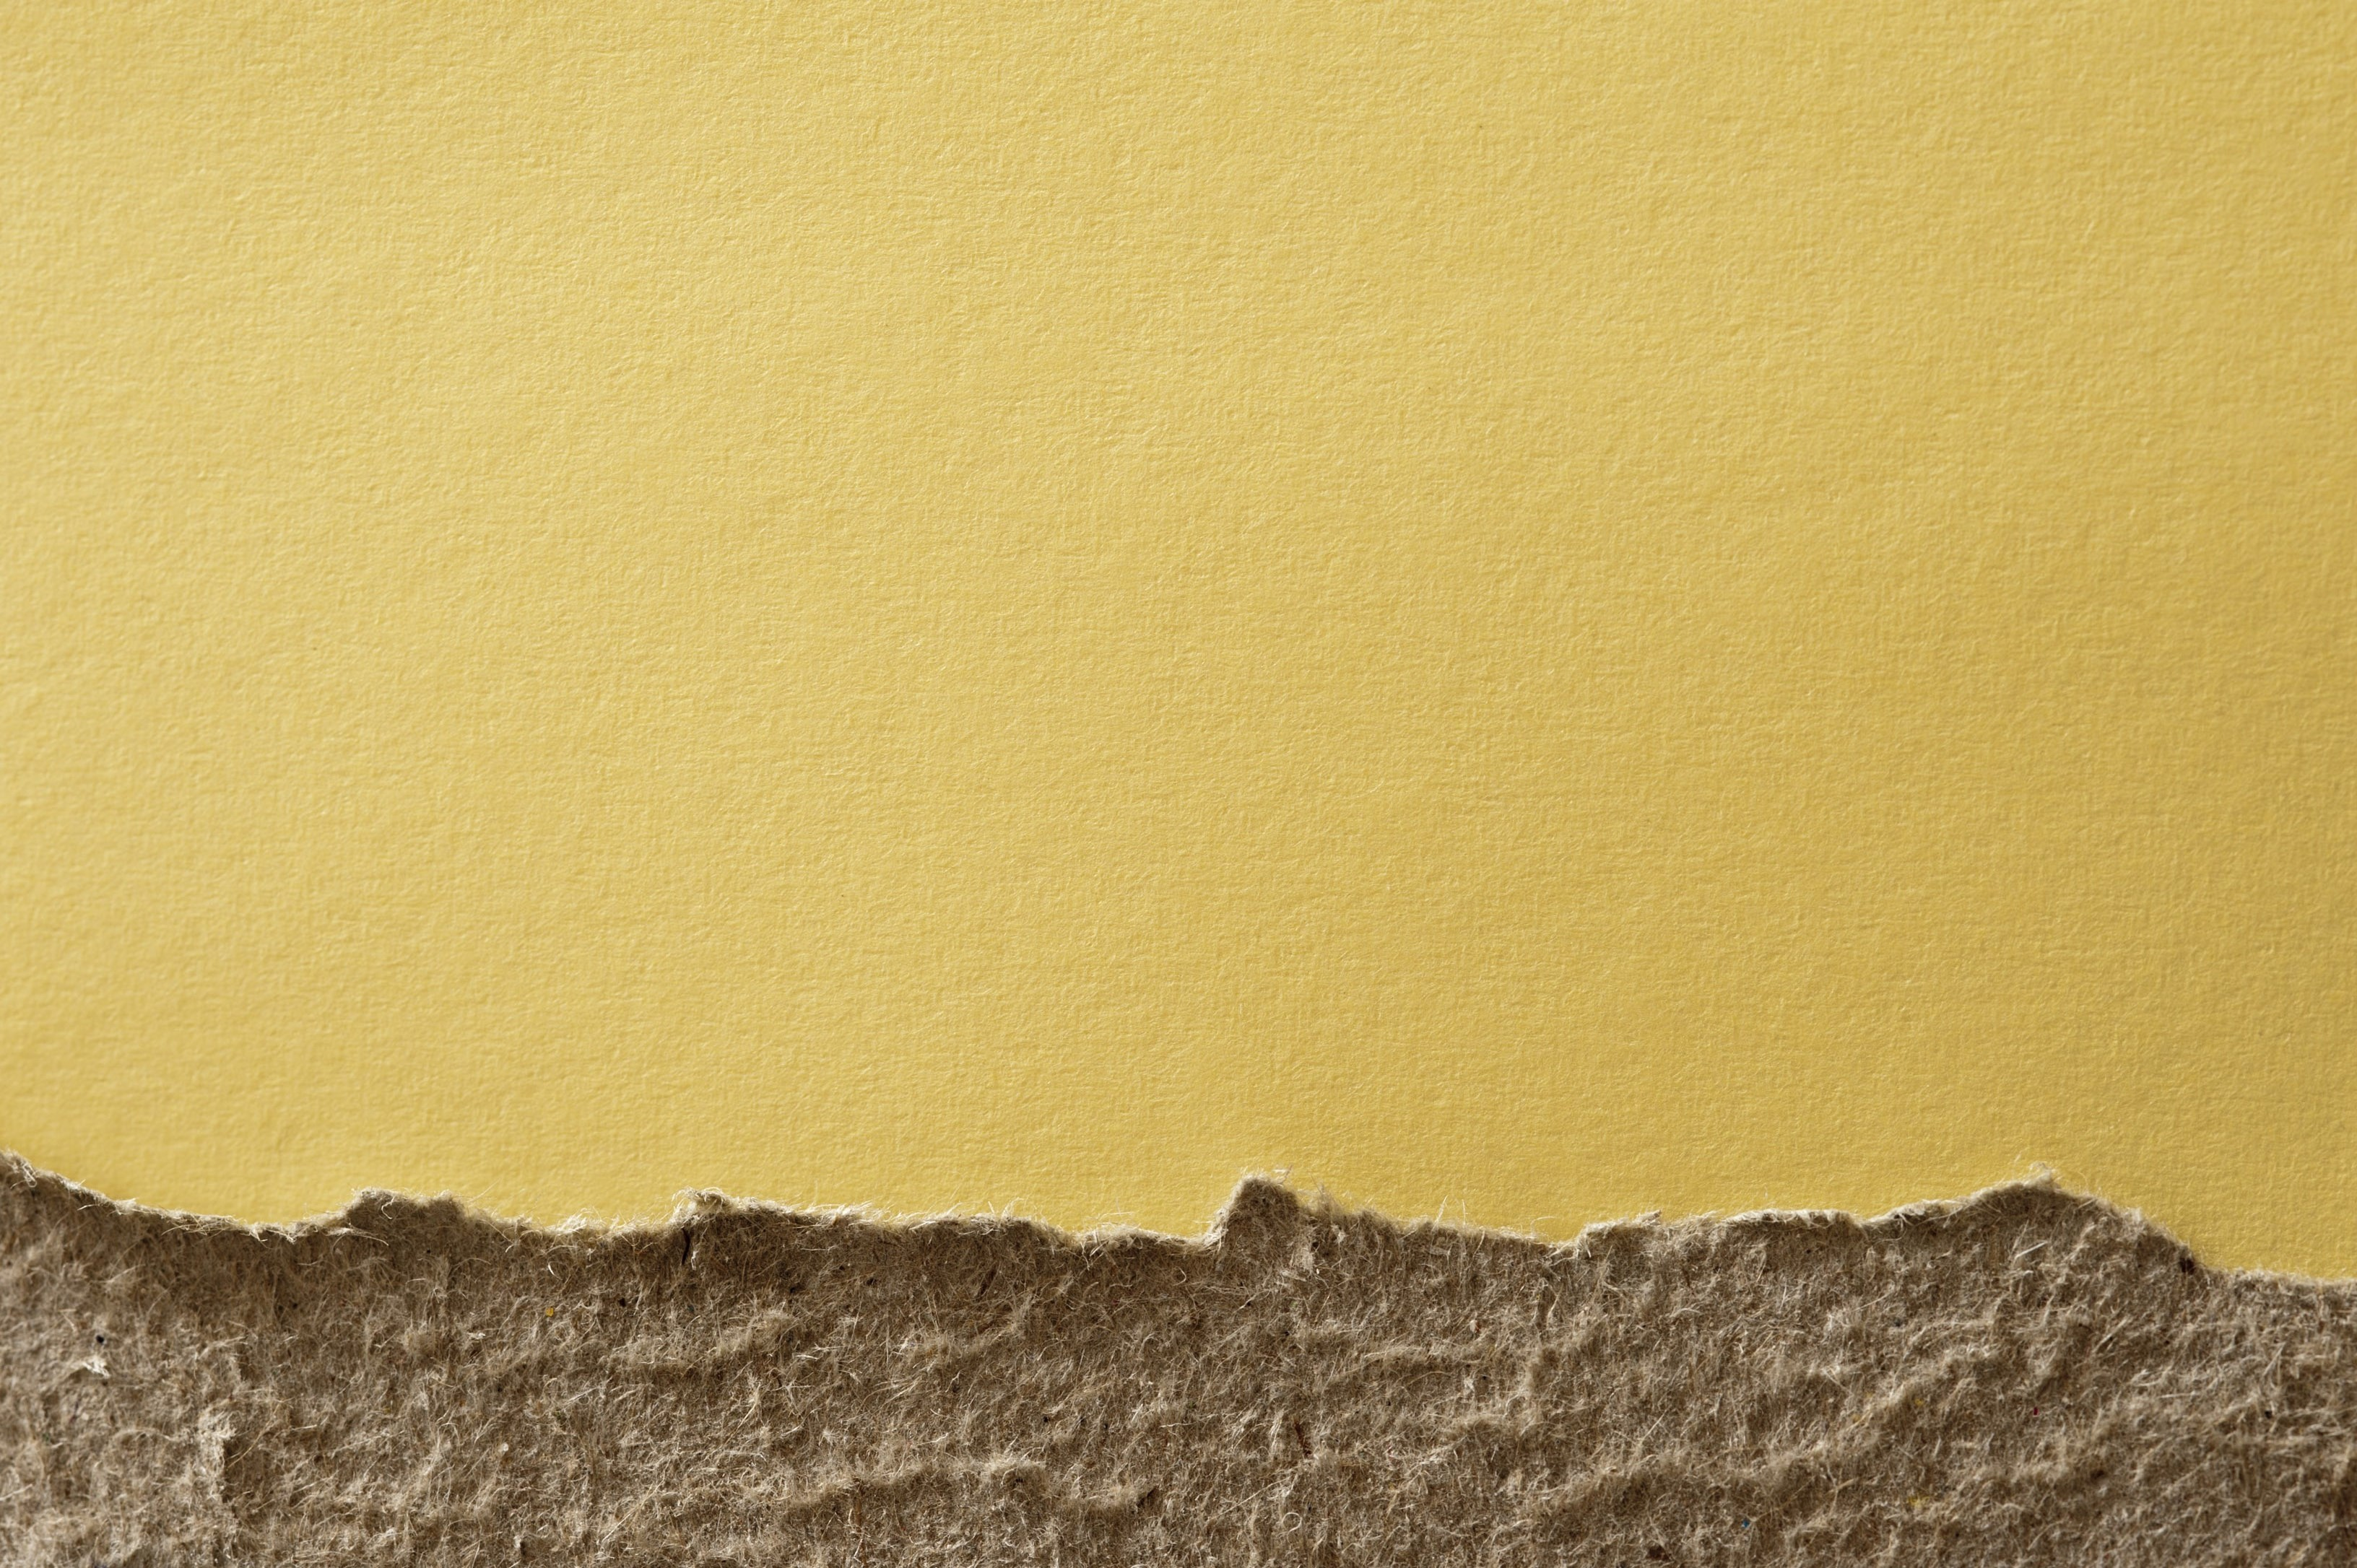 a textured yellow background with rough unbleached torn card border at the bottom